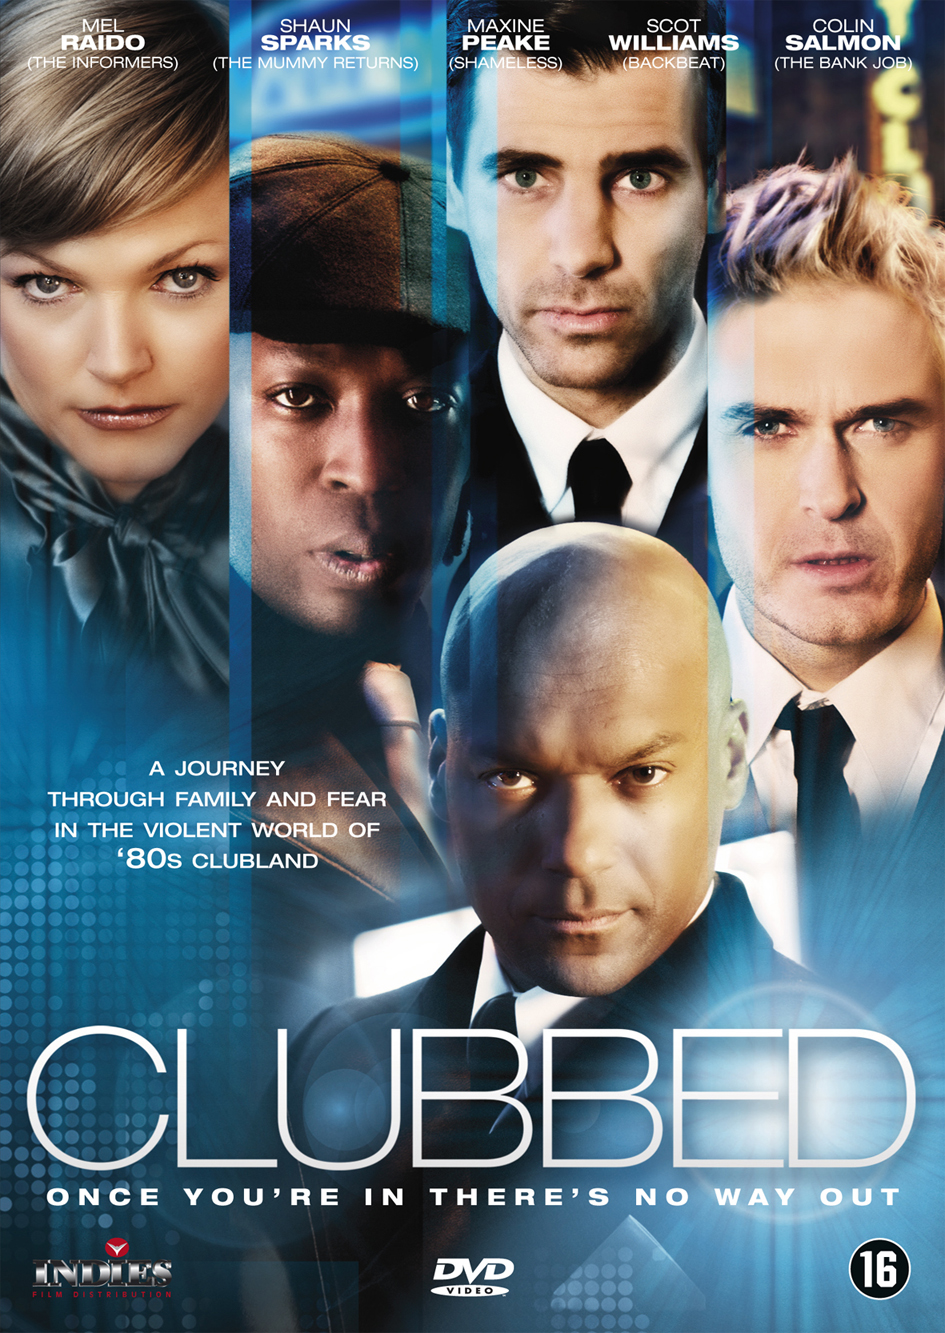 Clubbed_DVDTECHNI_821563.indd